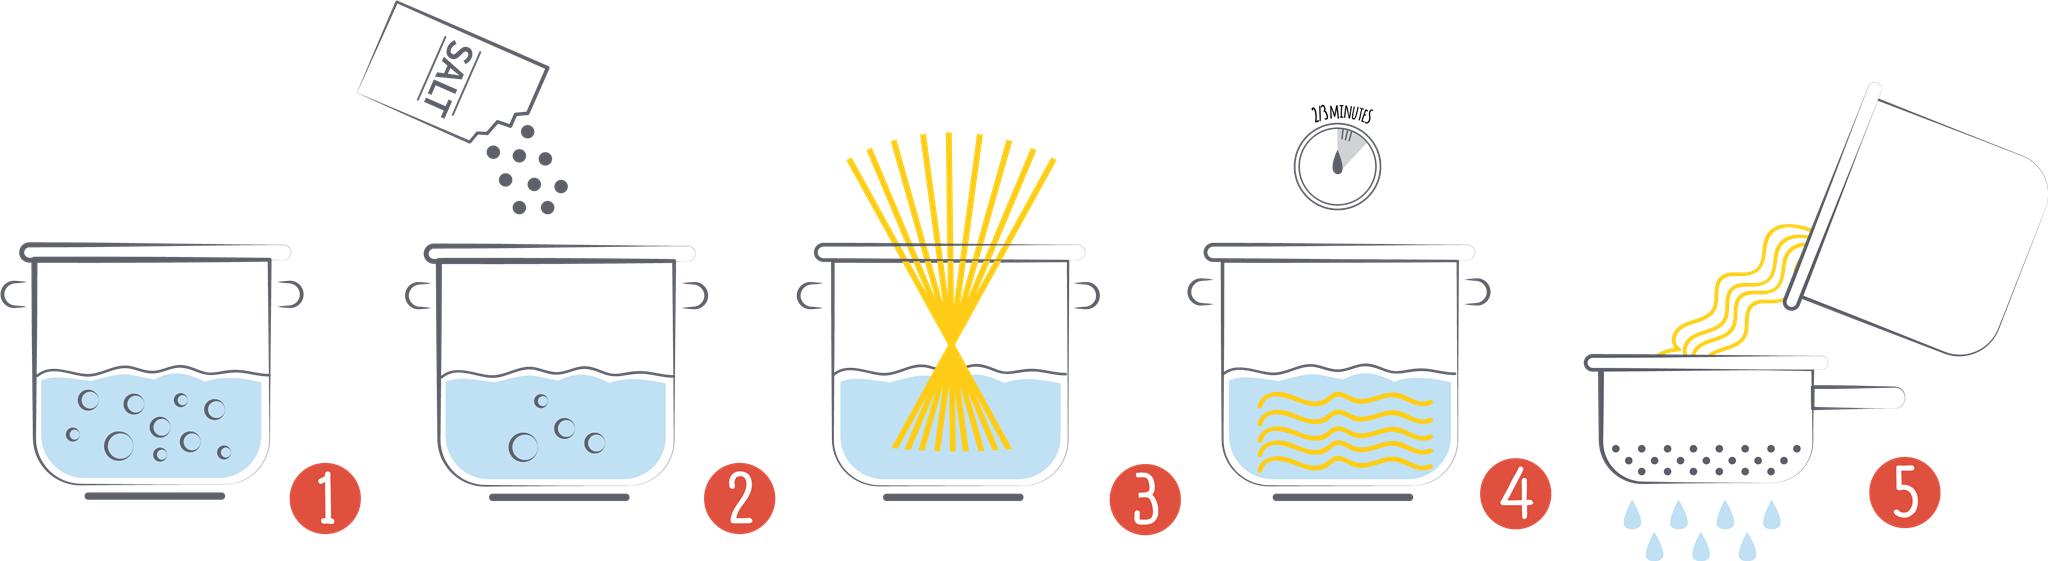 How to cook Pasta step by step